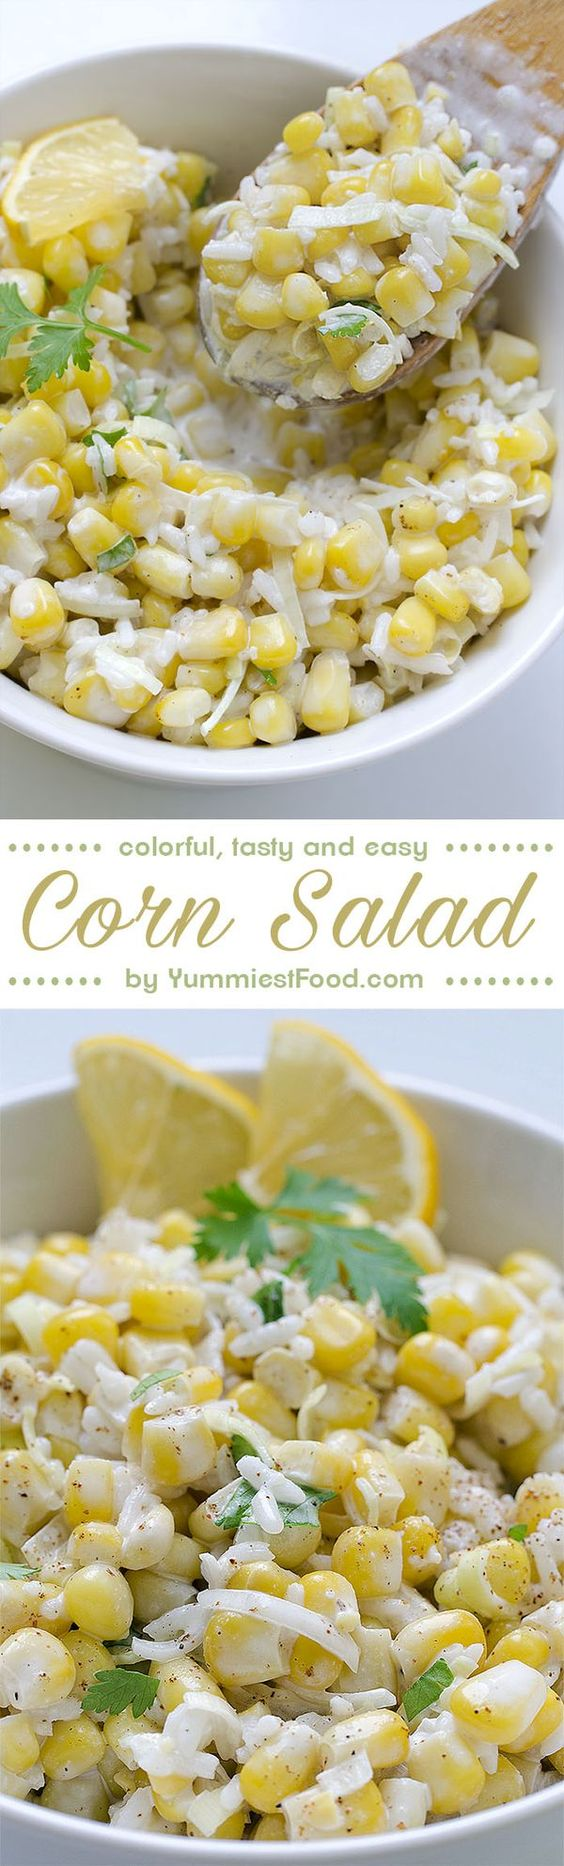 Corn Salad - colorful, tasty and easy, so delicious that you will want to skip main dish and make this a meal instead!